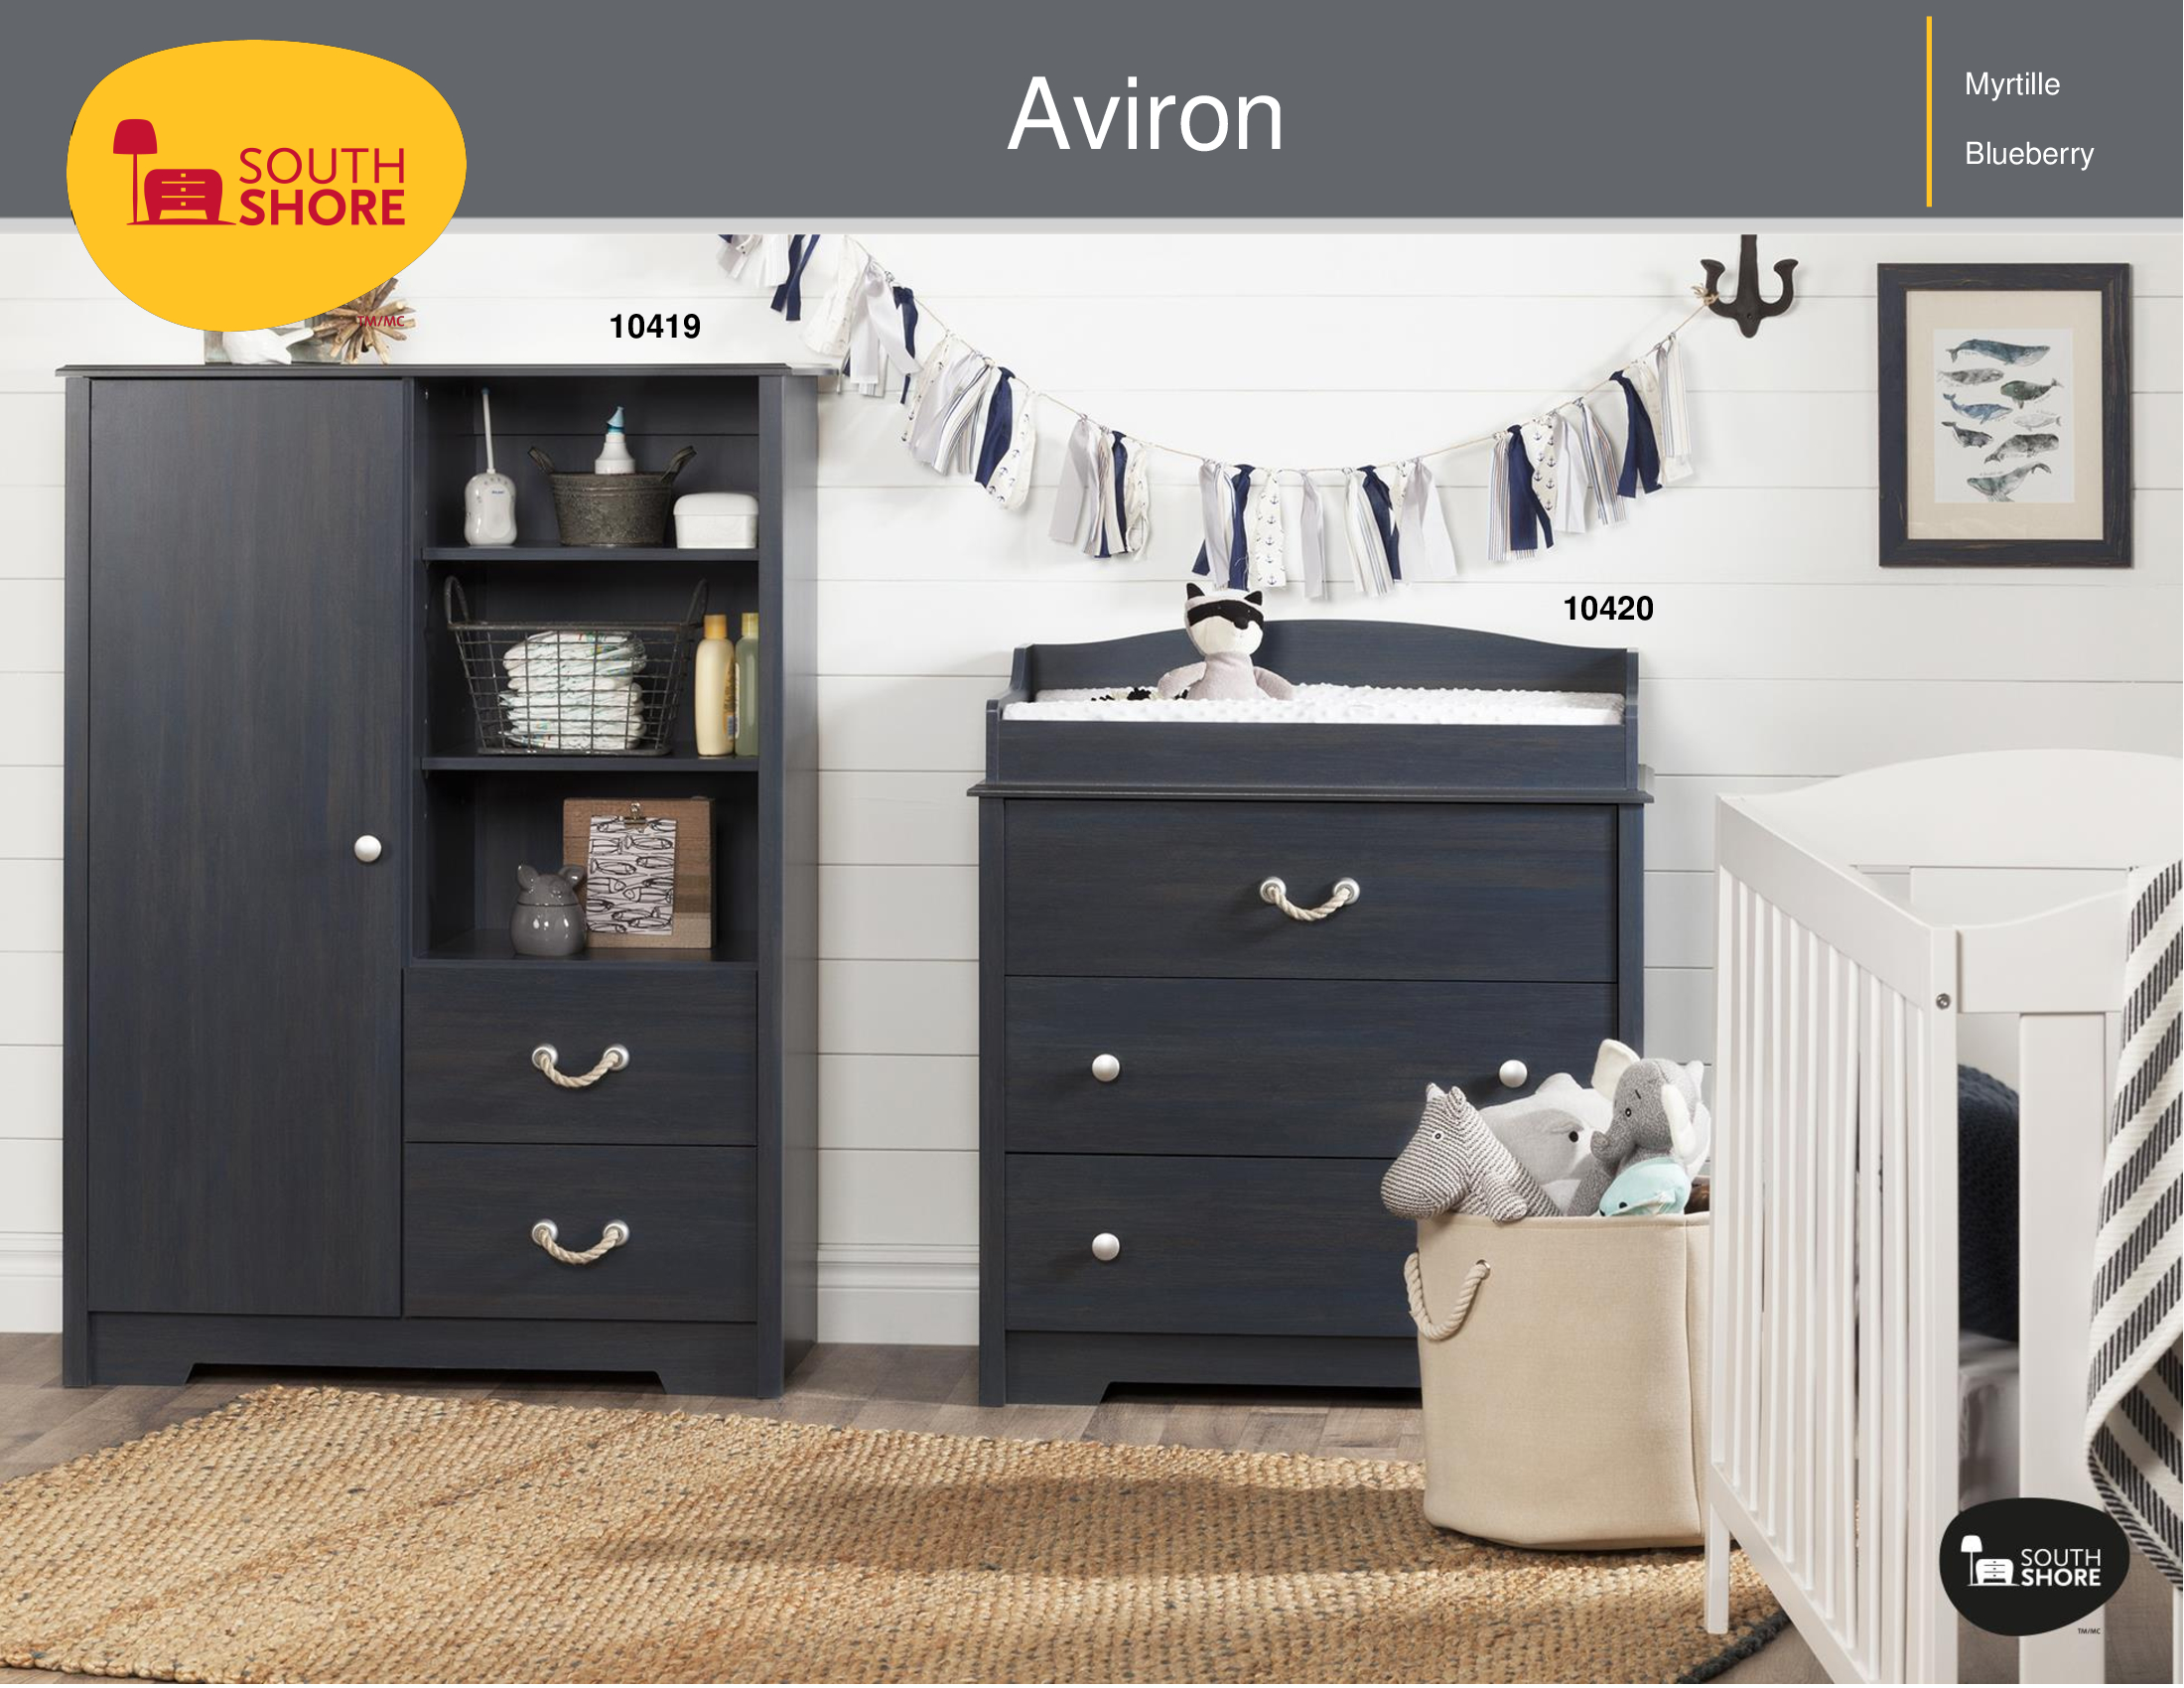 Collection aviron ameublement beaubien magasin de for Meuble beaubien